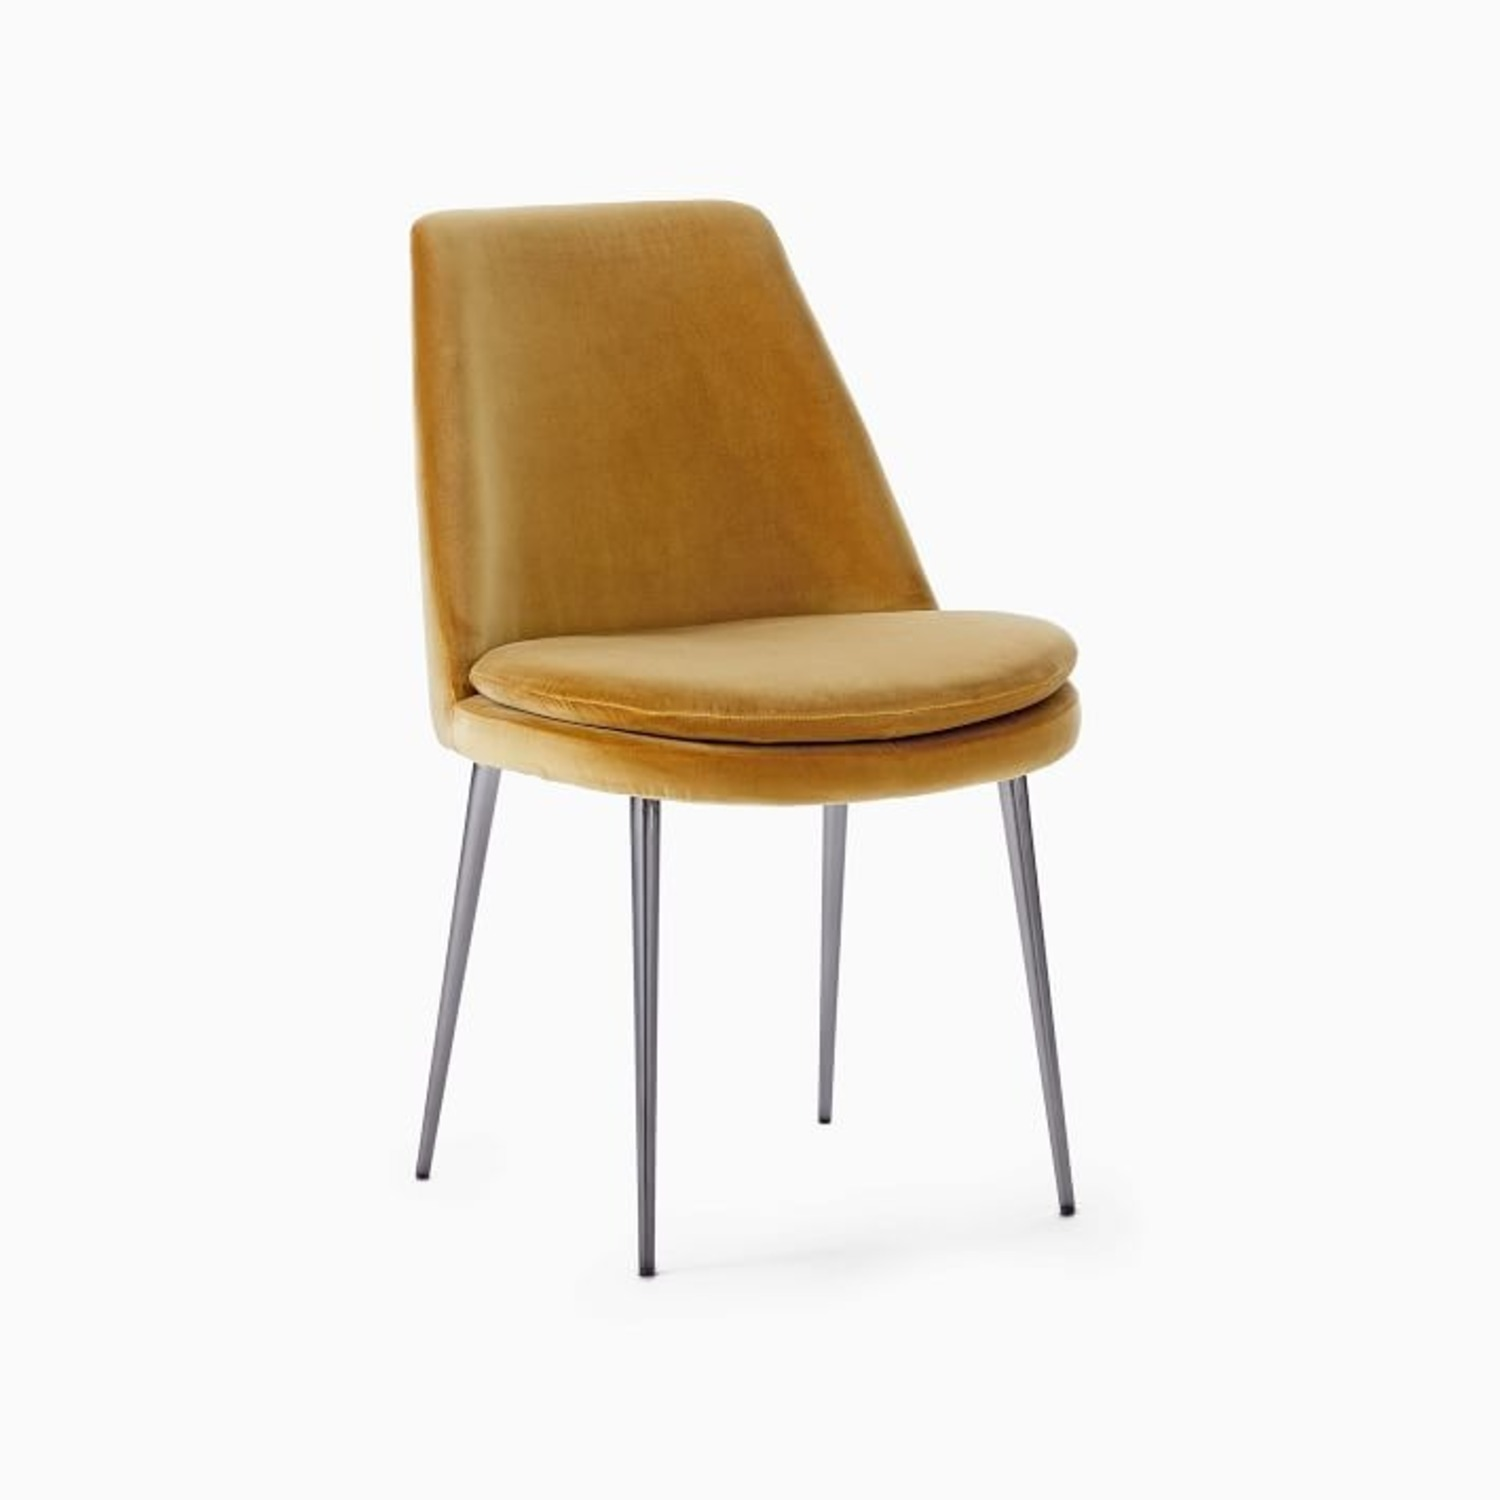 West Elm Finley Low-Back Upholstered Dining Chair - image-3